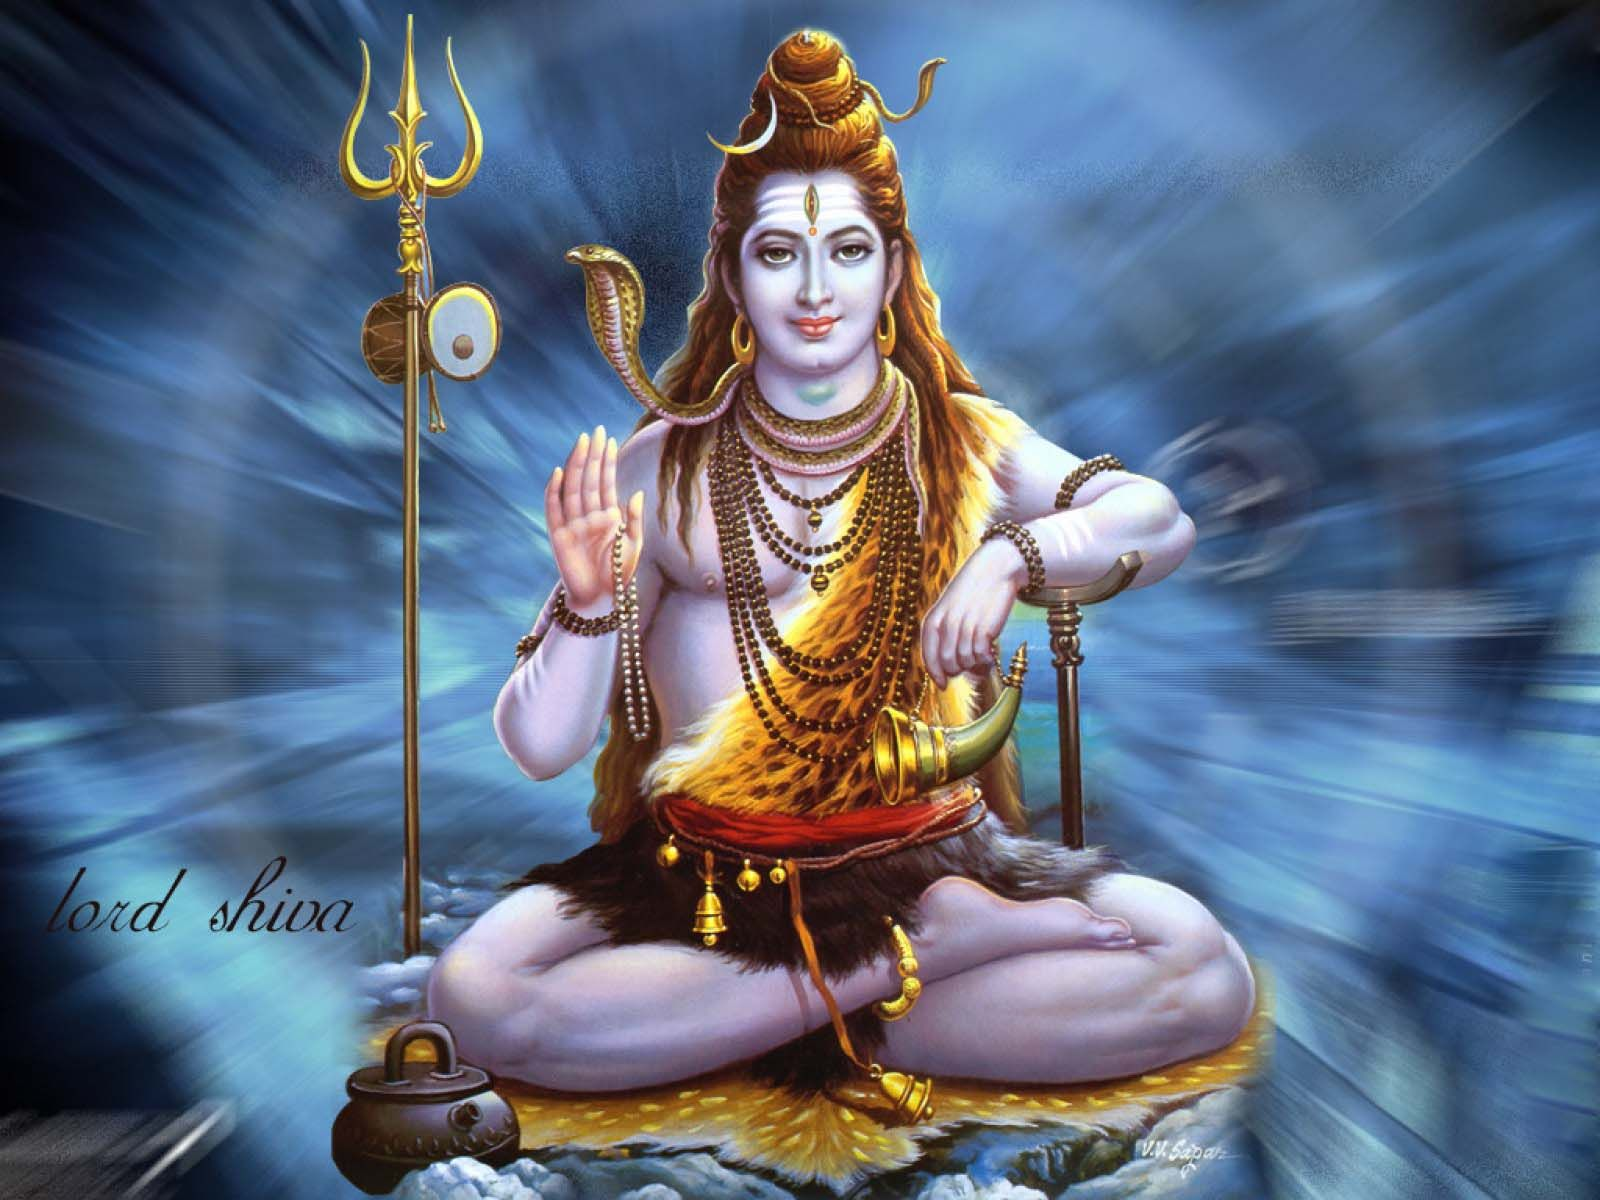 Free Download Lord Shiva Wallpaper Powers Jpg 1600 1200 God Shiva Shiva Wallpaper Lord Shiva Mantra